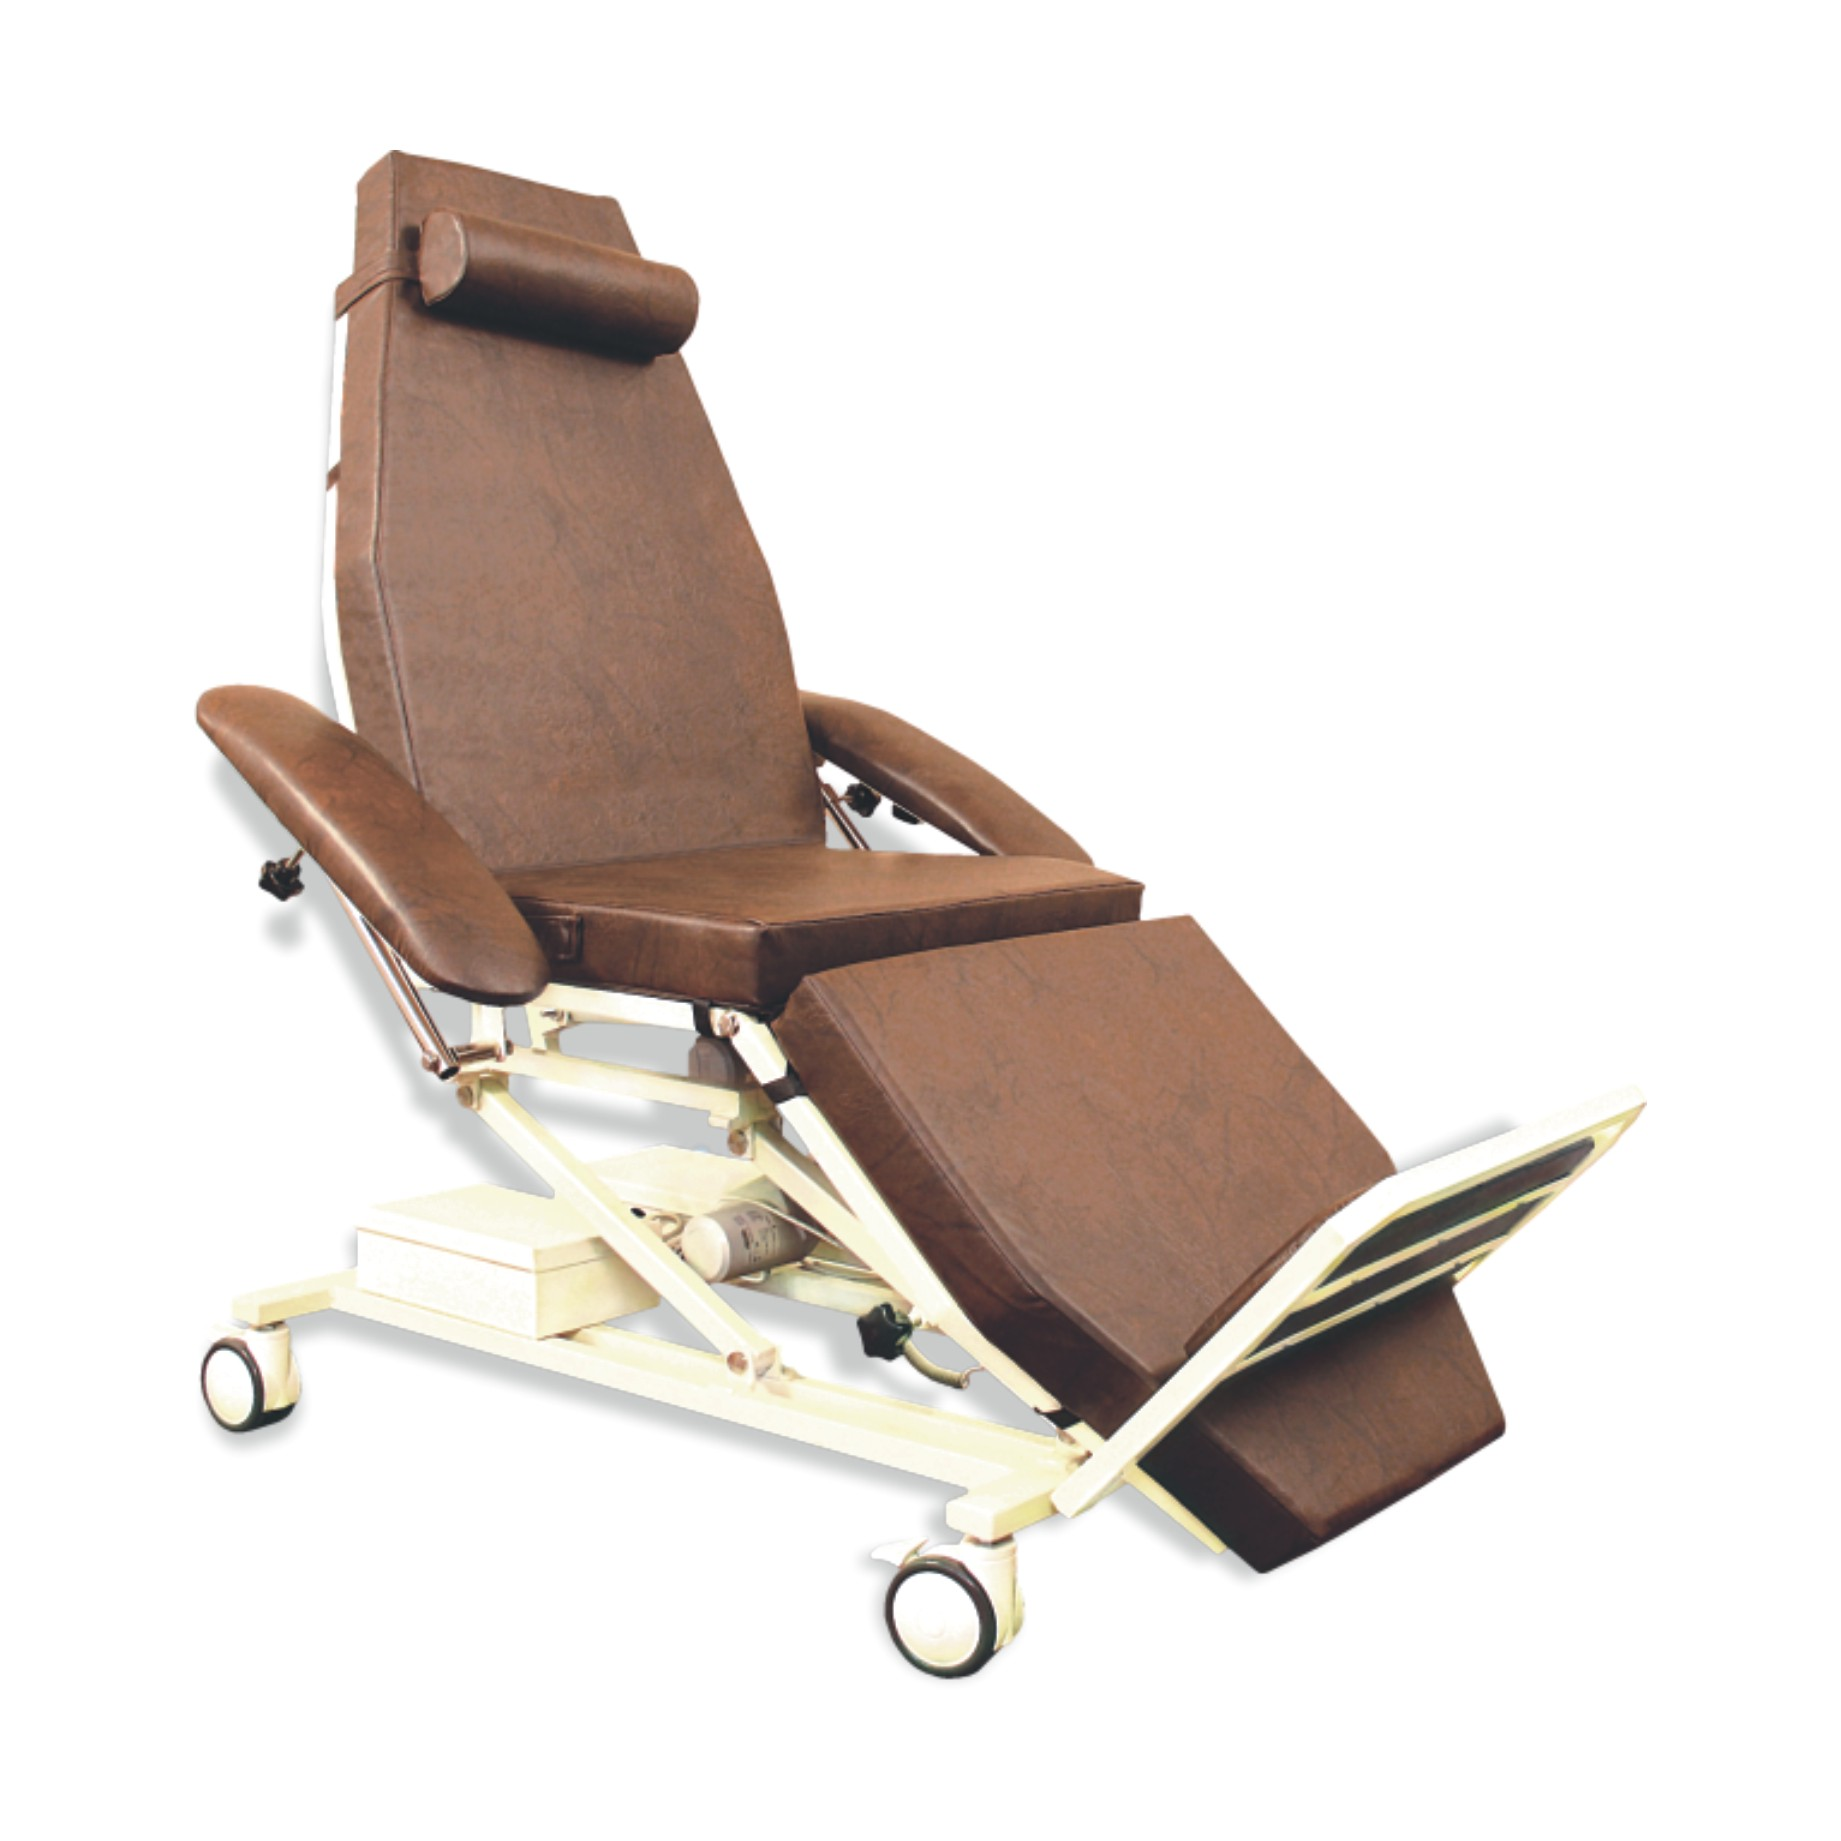 Buy Dialysis Chair from Hemant Surgical Industries Limited Mumbai